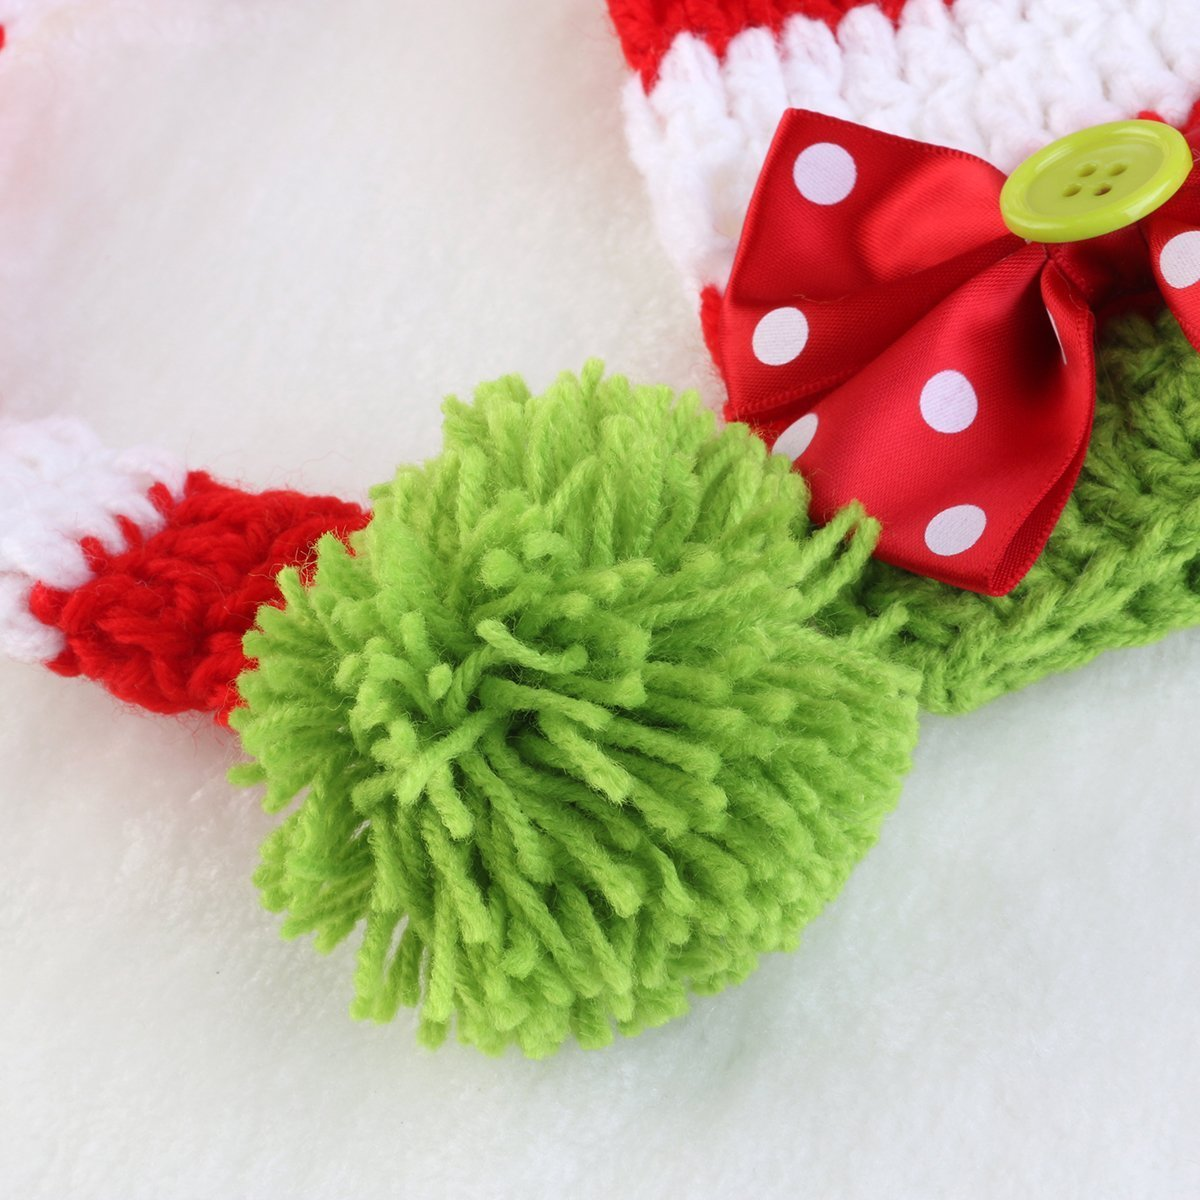 Rhumen Baby Photography Prop Christmas Baby Newborn Handmade Clothes by Rhumen (Image #3)